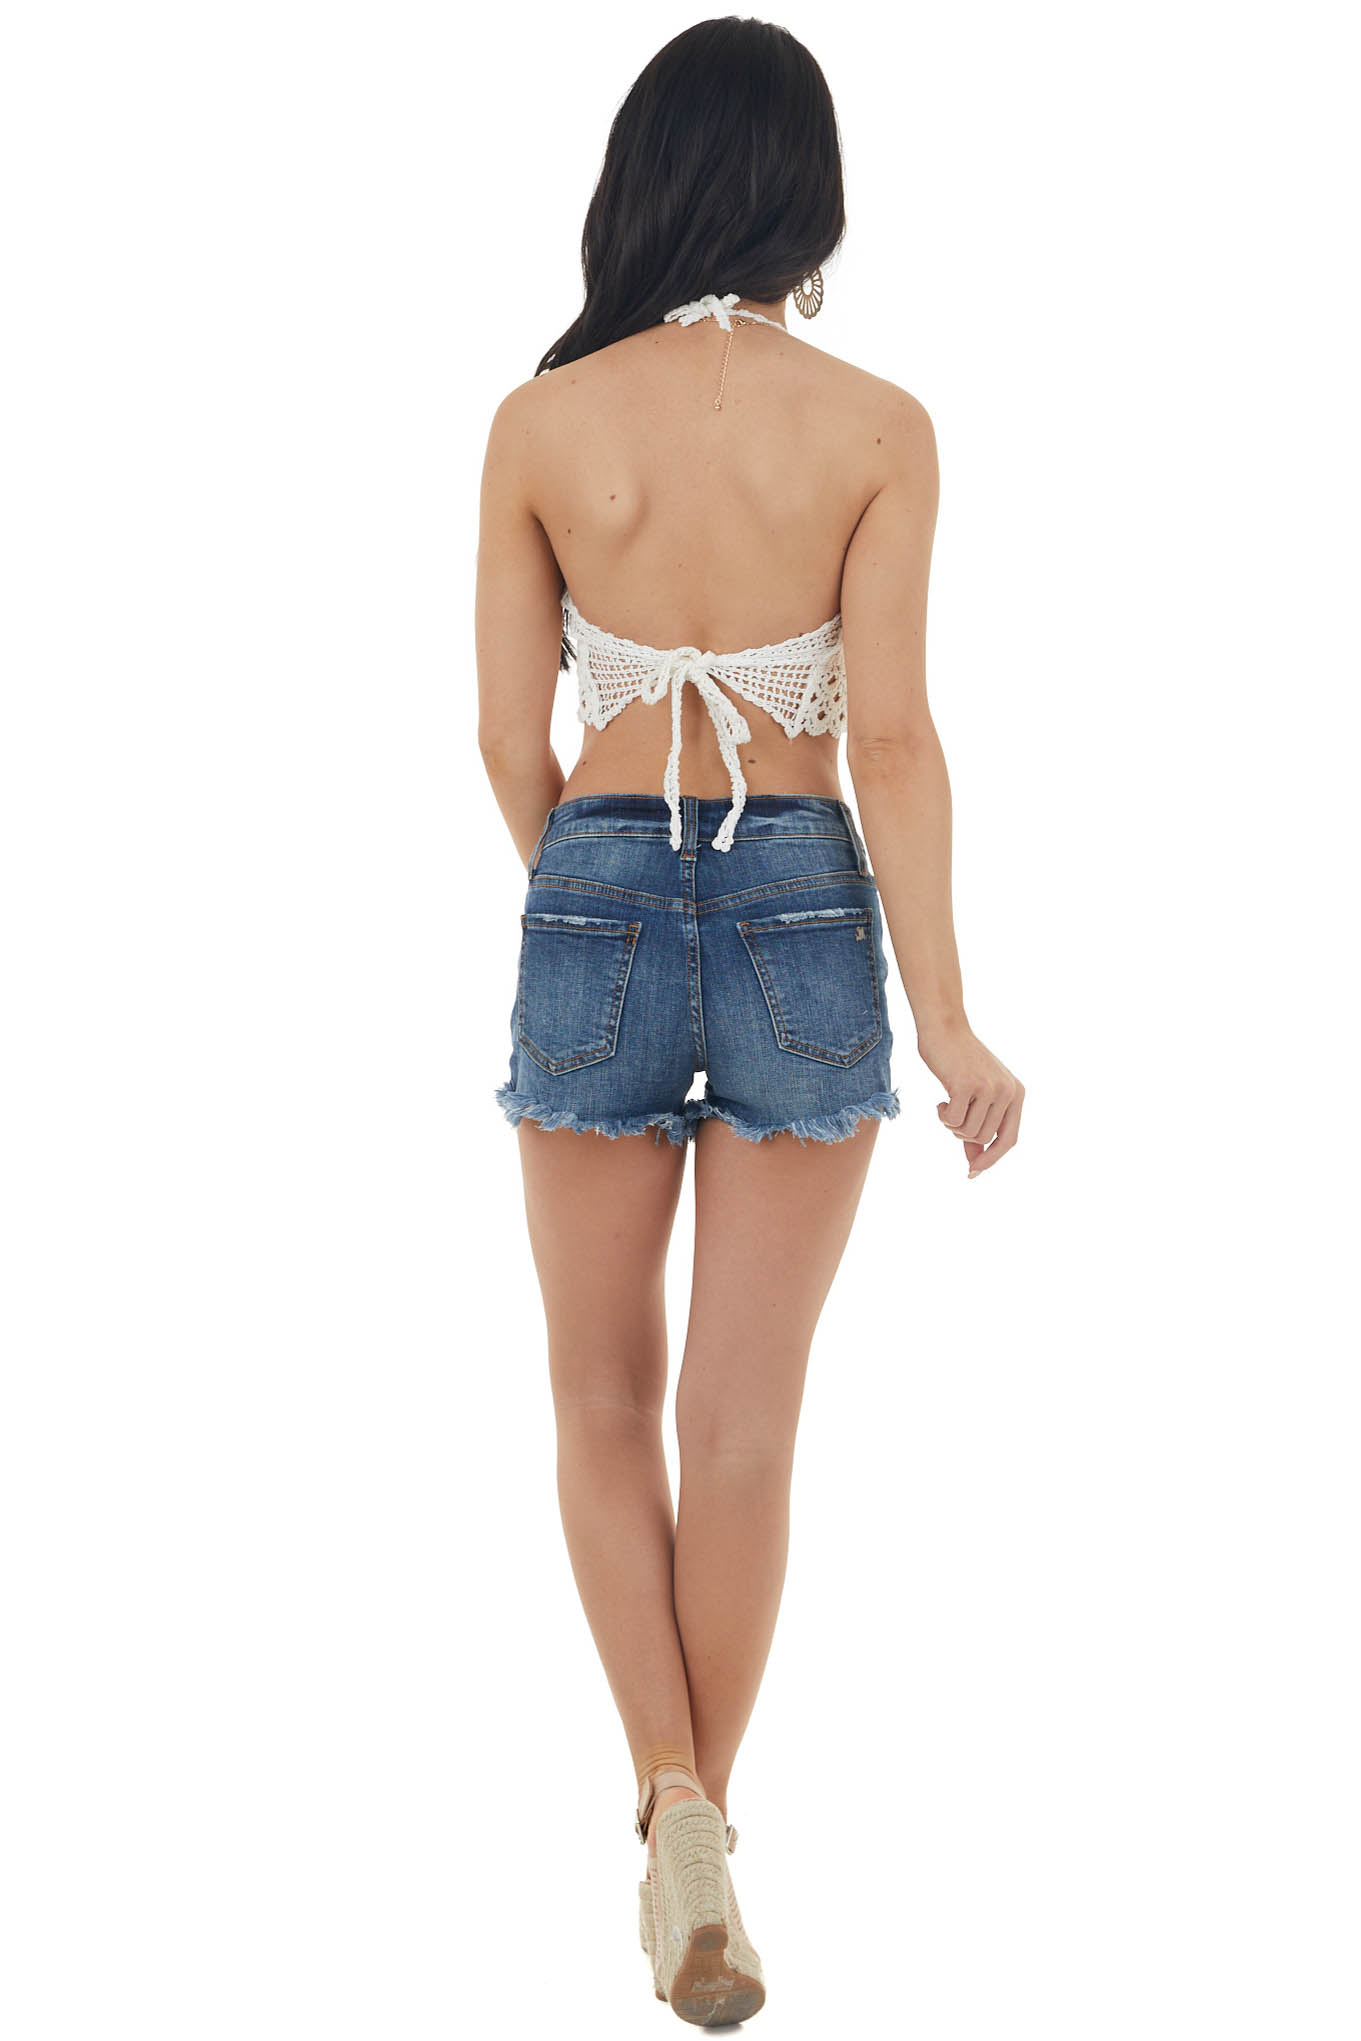 Off White Crocheted Bralette with Neck and Back Ties